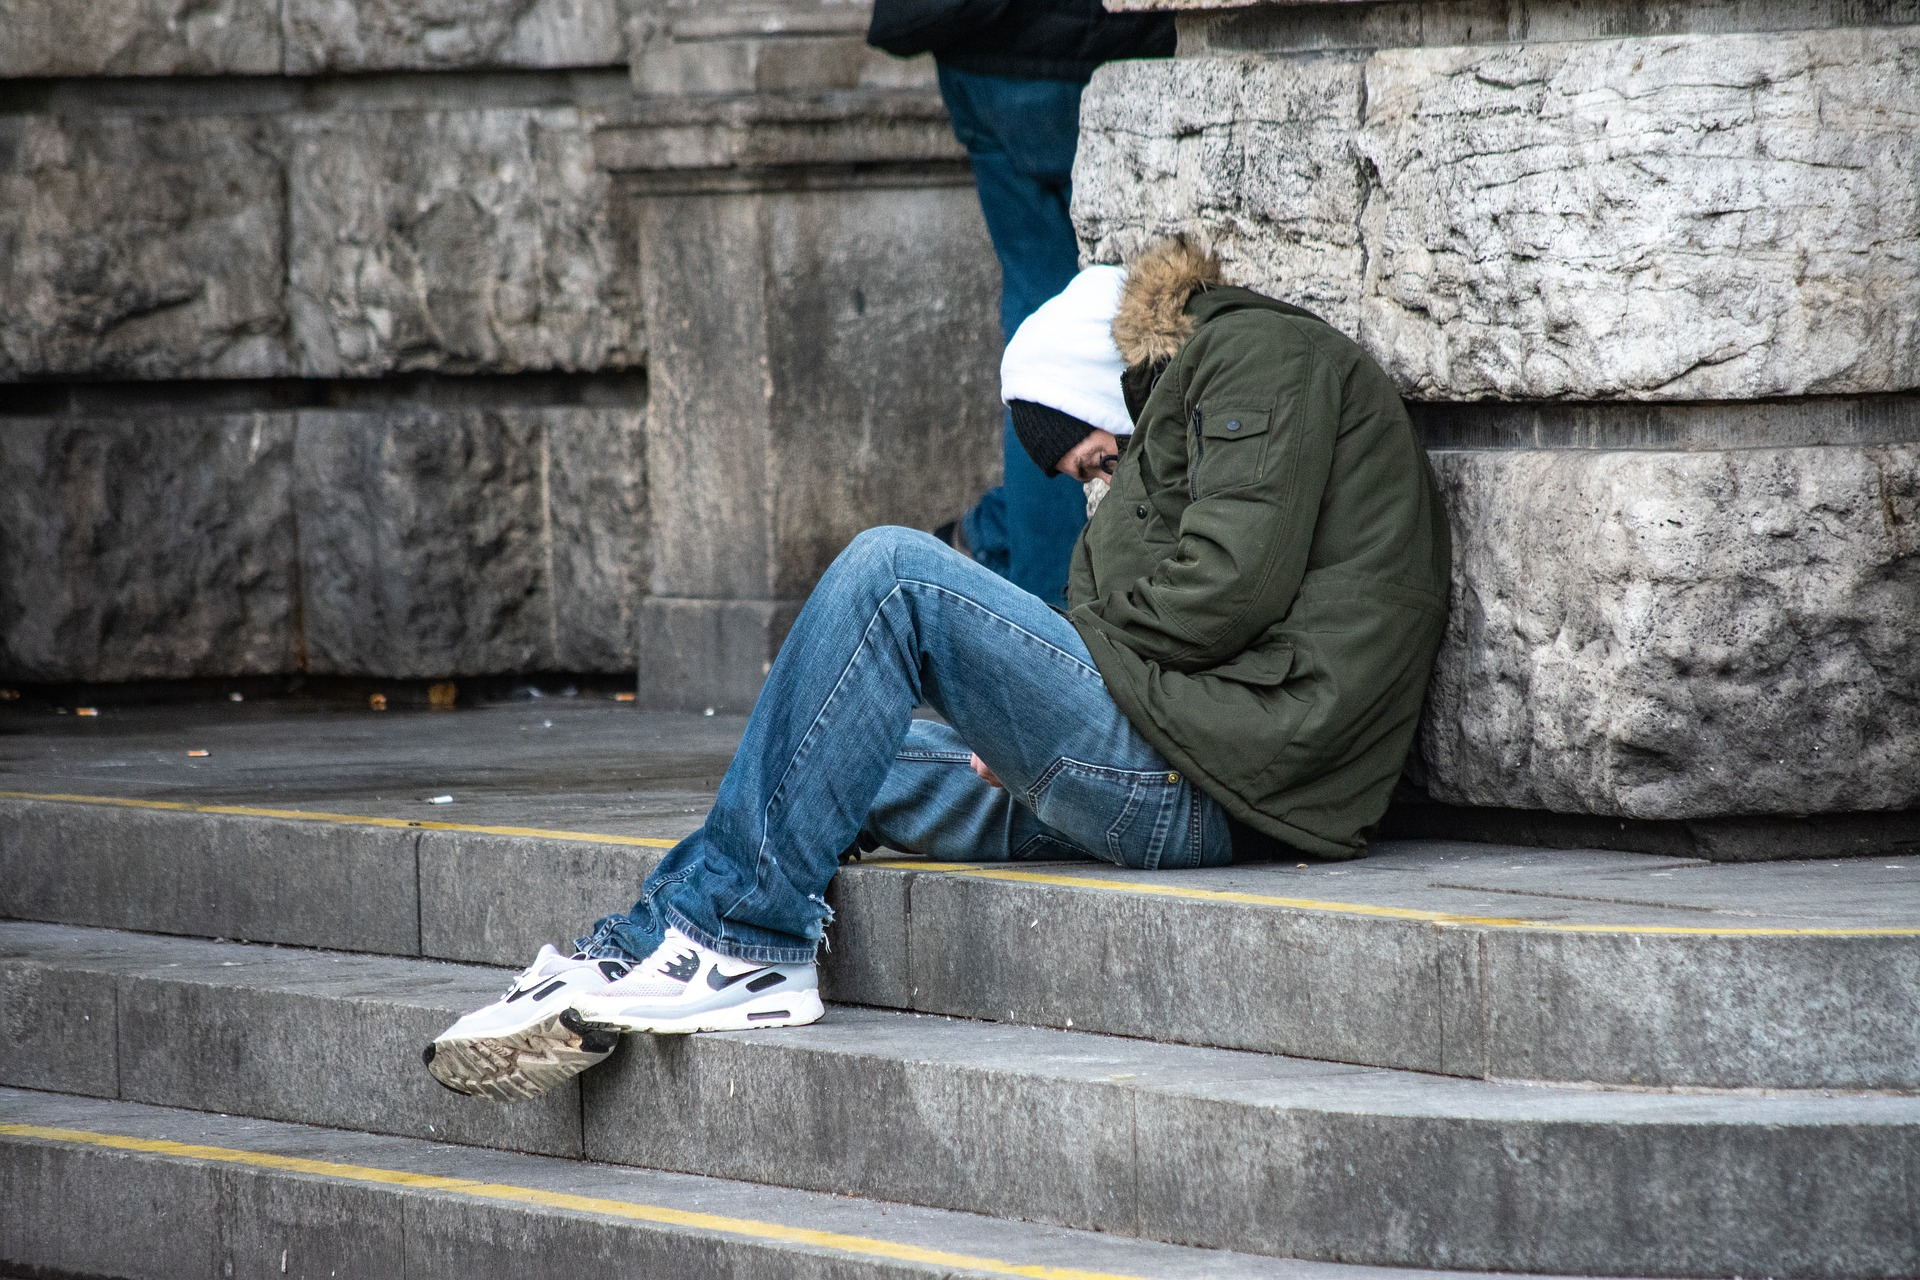 A young man sits on the street with his hood up